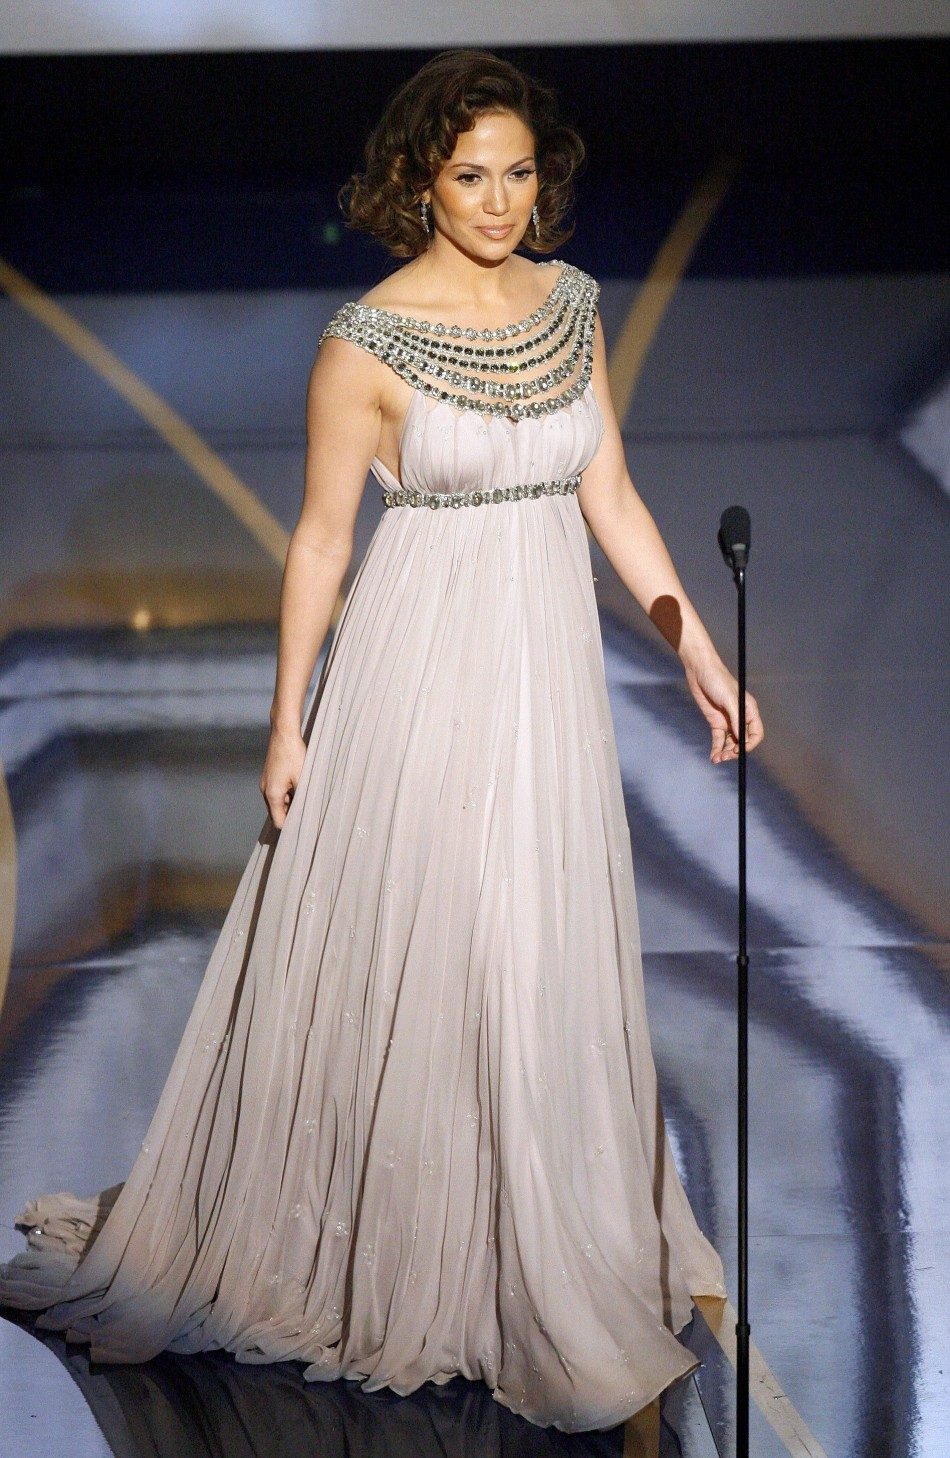 Actress and singer Jennifer Lopez walks on stage to introduce music performance from Dreamgirls at the 79th Annual Academy Awards in Hollywood, California, February 25, 2007.